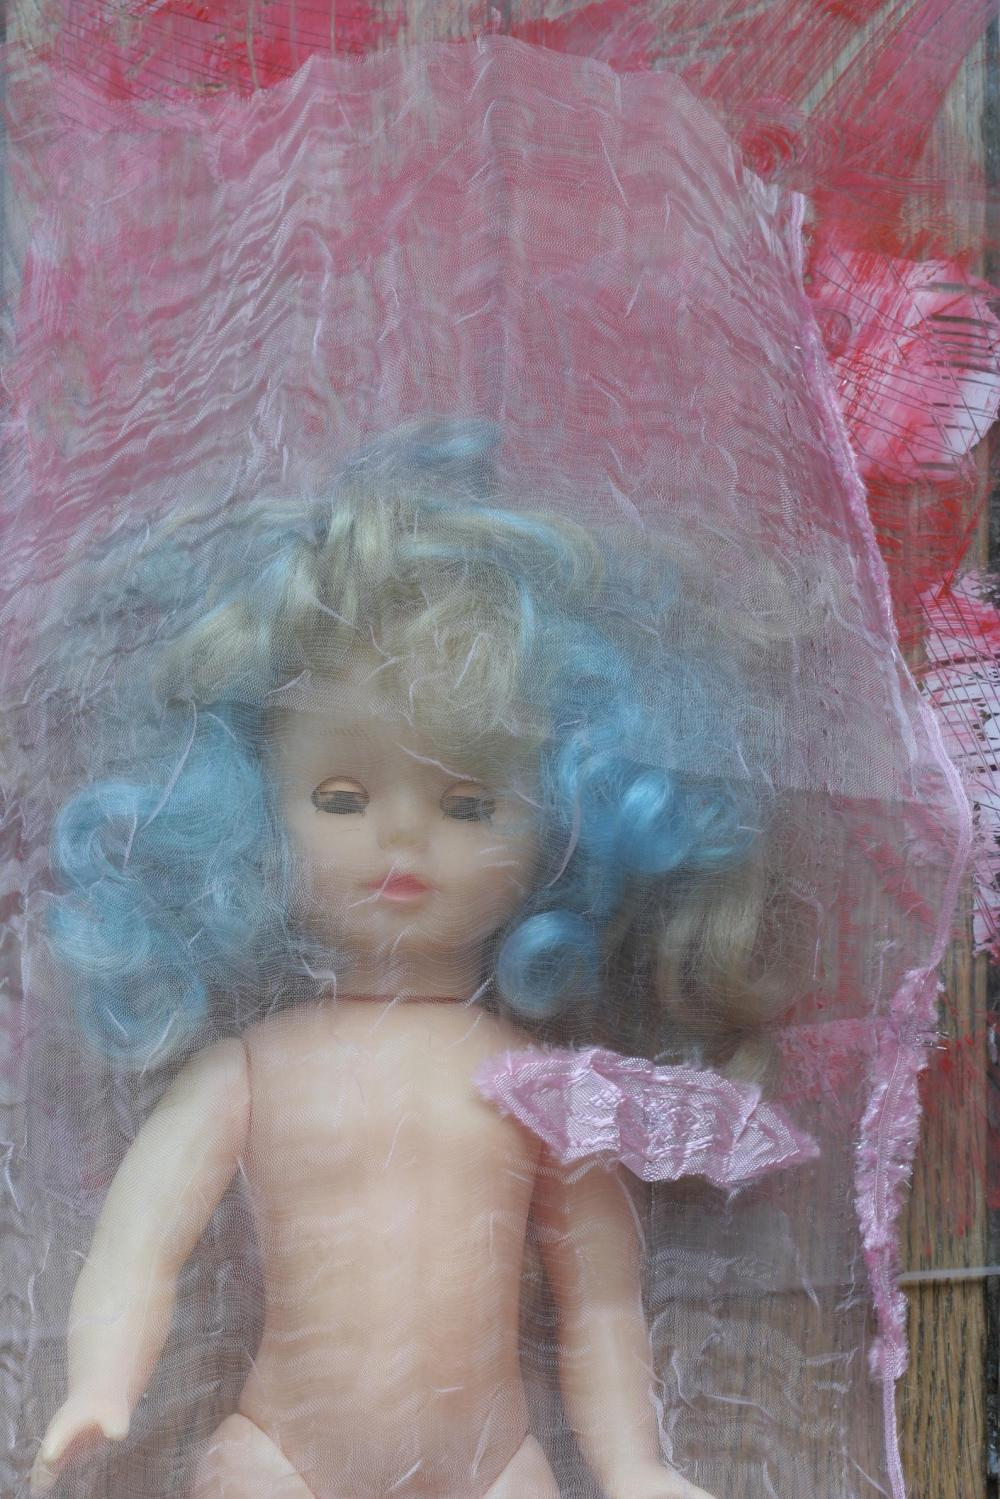 A Naked Doll under different Veils...